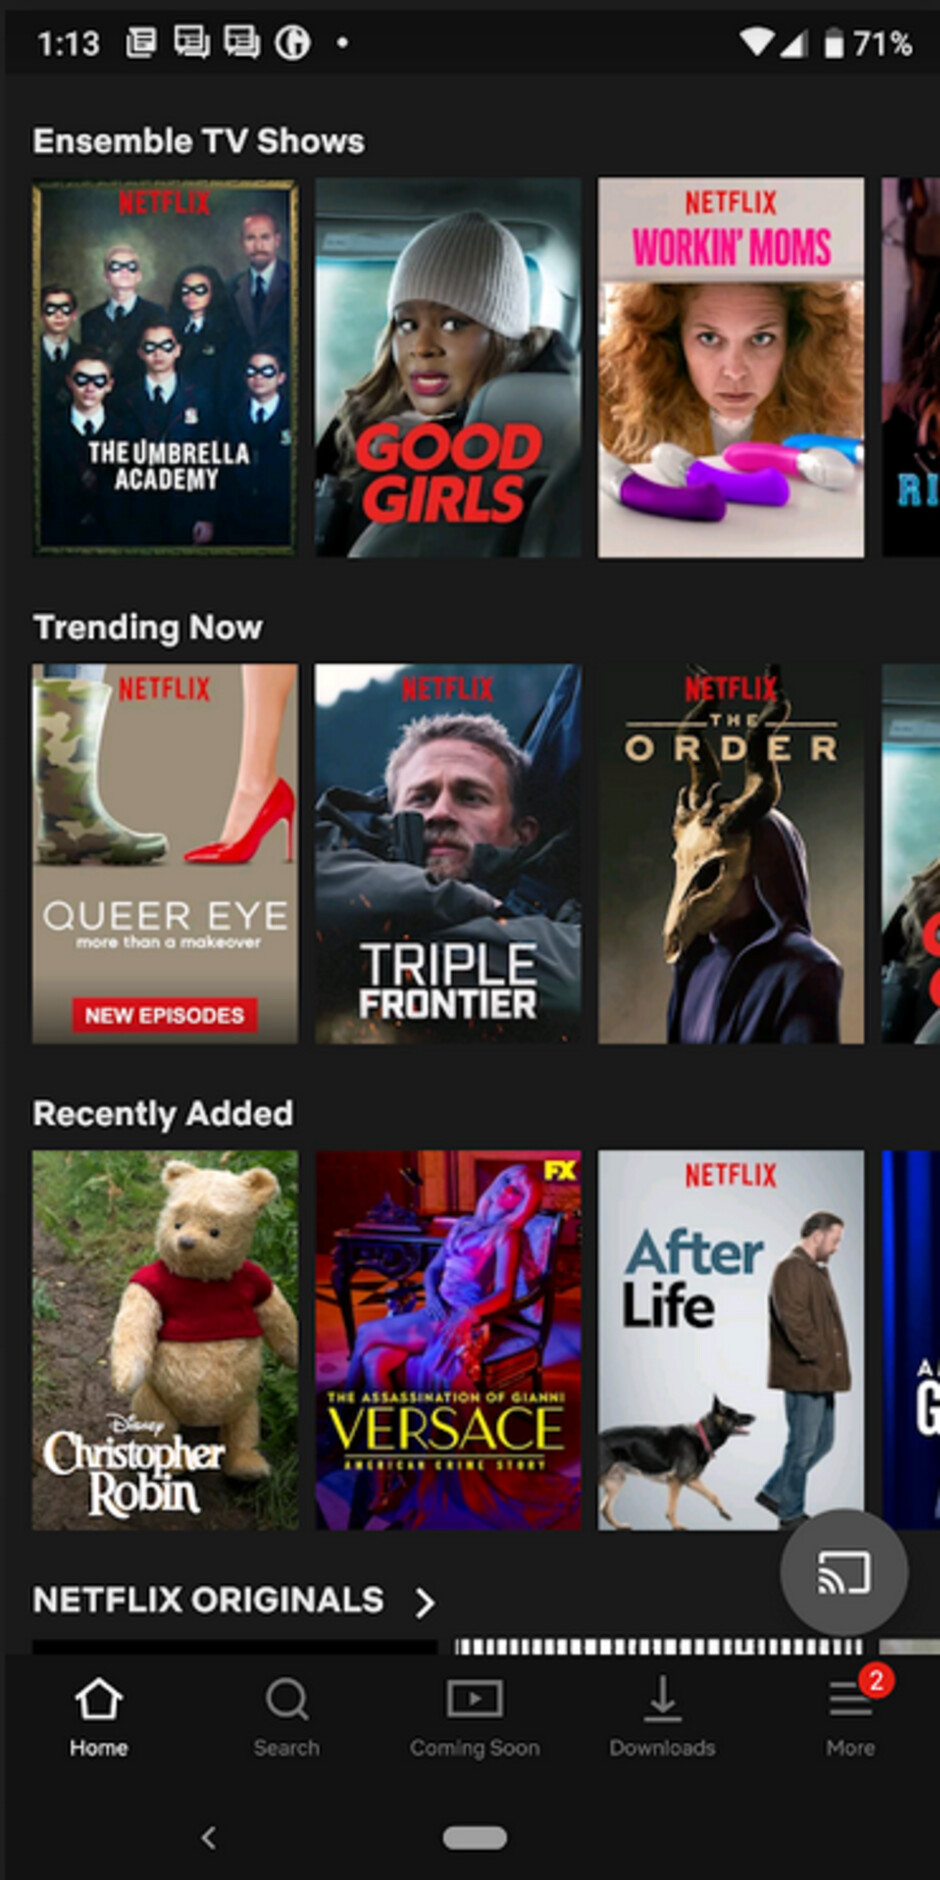 The current grid-based UI used by Netflix for its Android app - Netflix CEO hints that a major redesign is coming